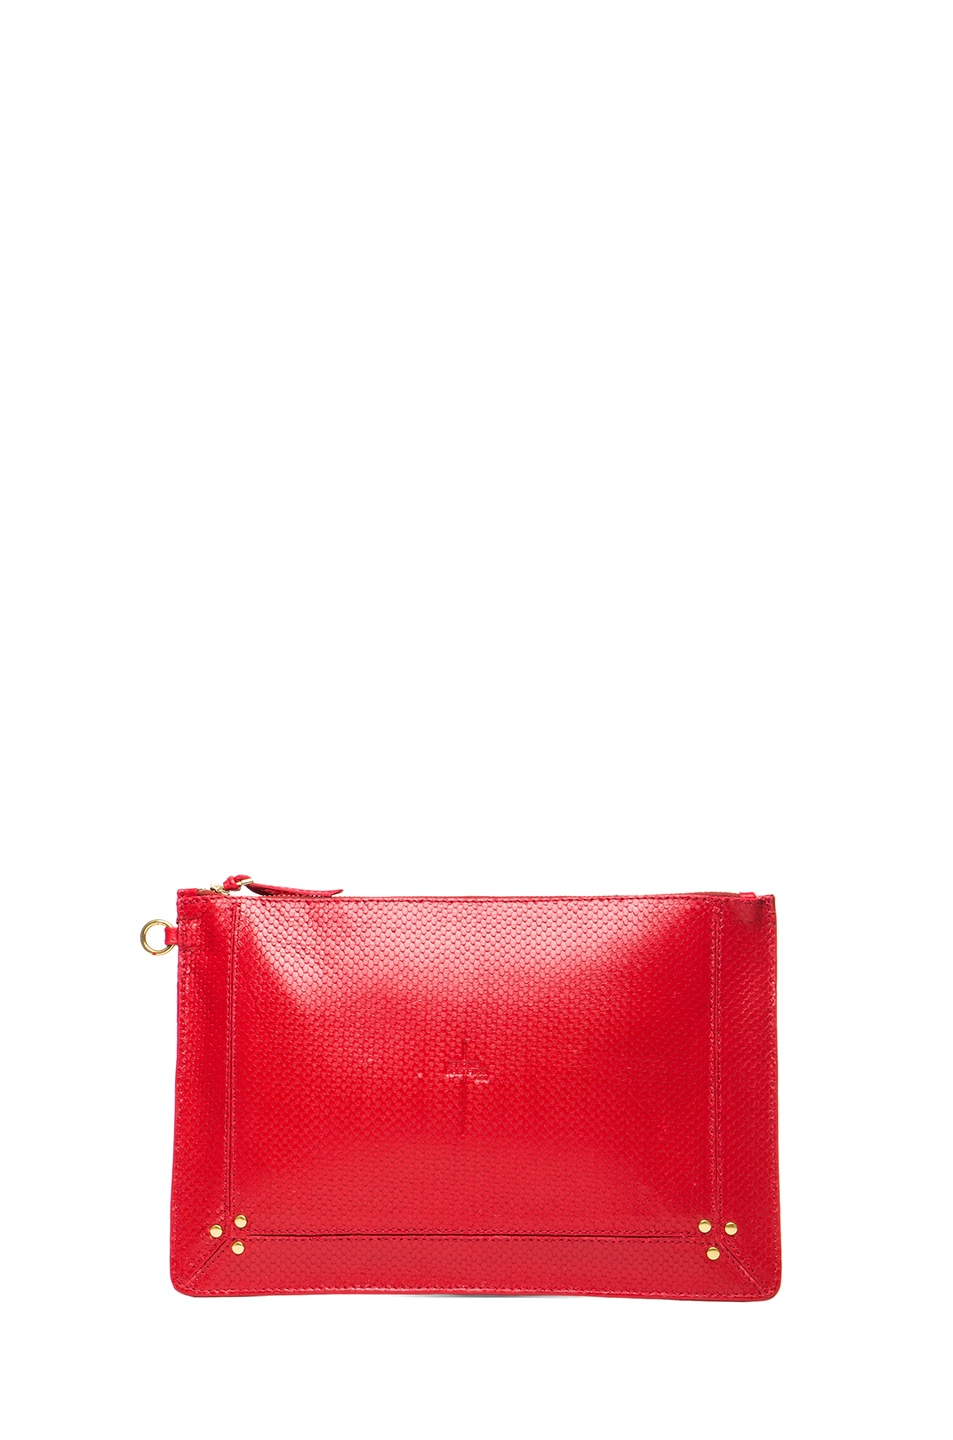 Image 1 of Jerome Dreyfuss Large Popoche Clutch in Red